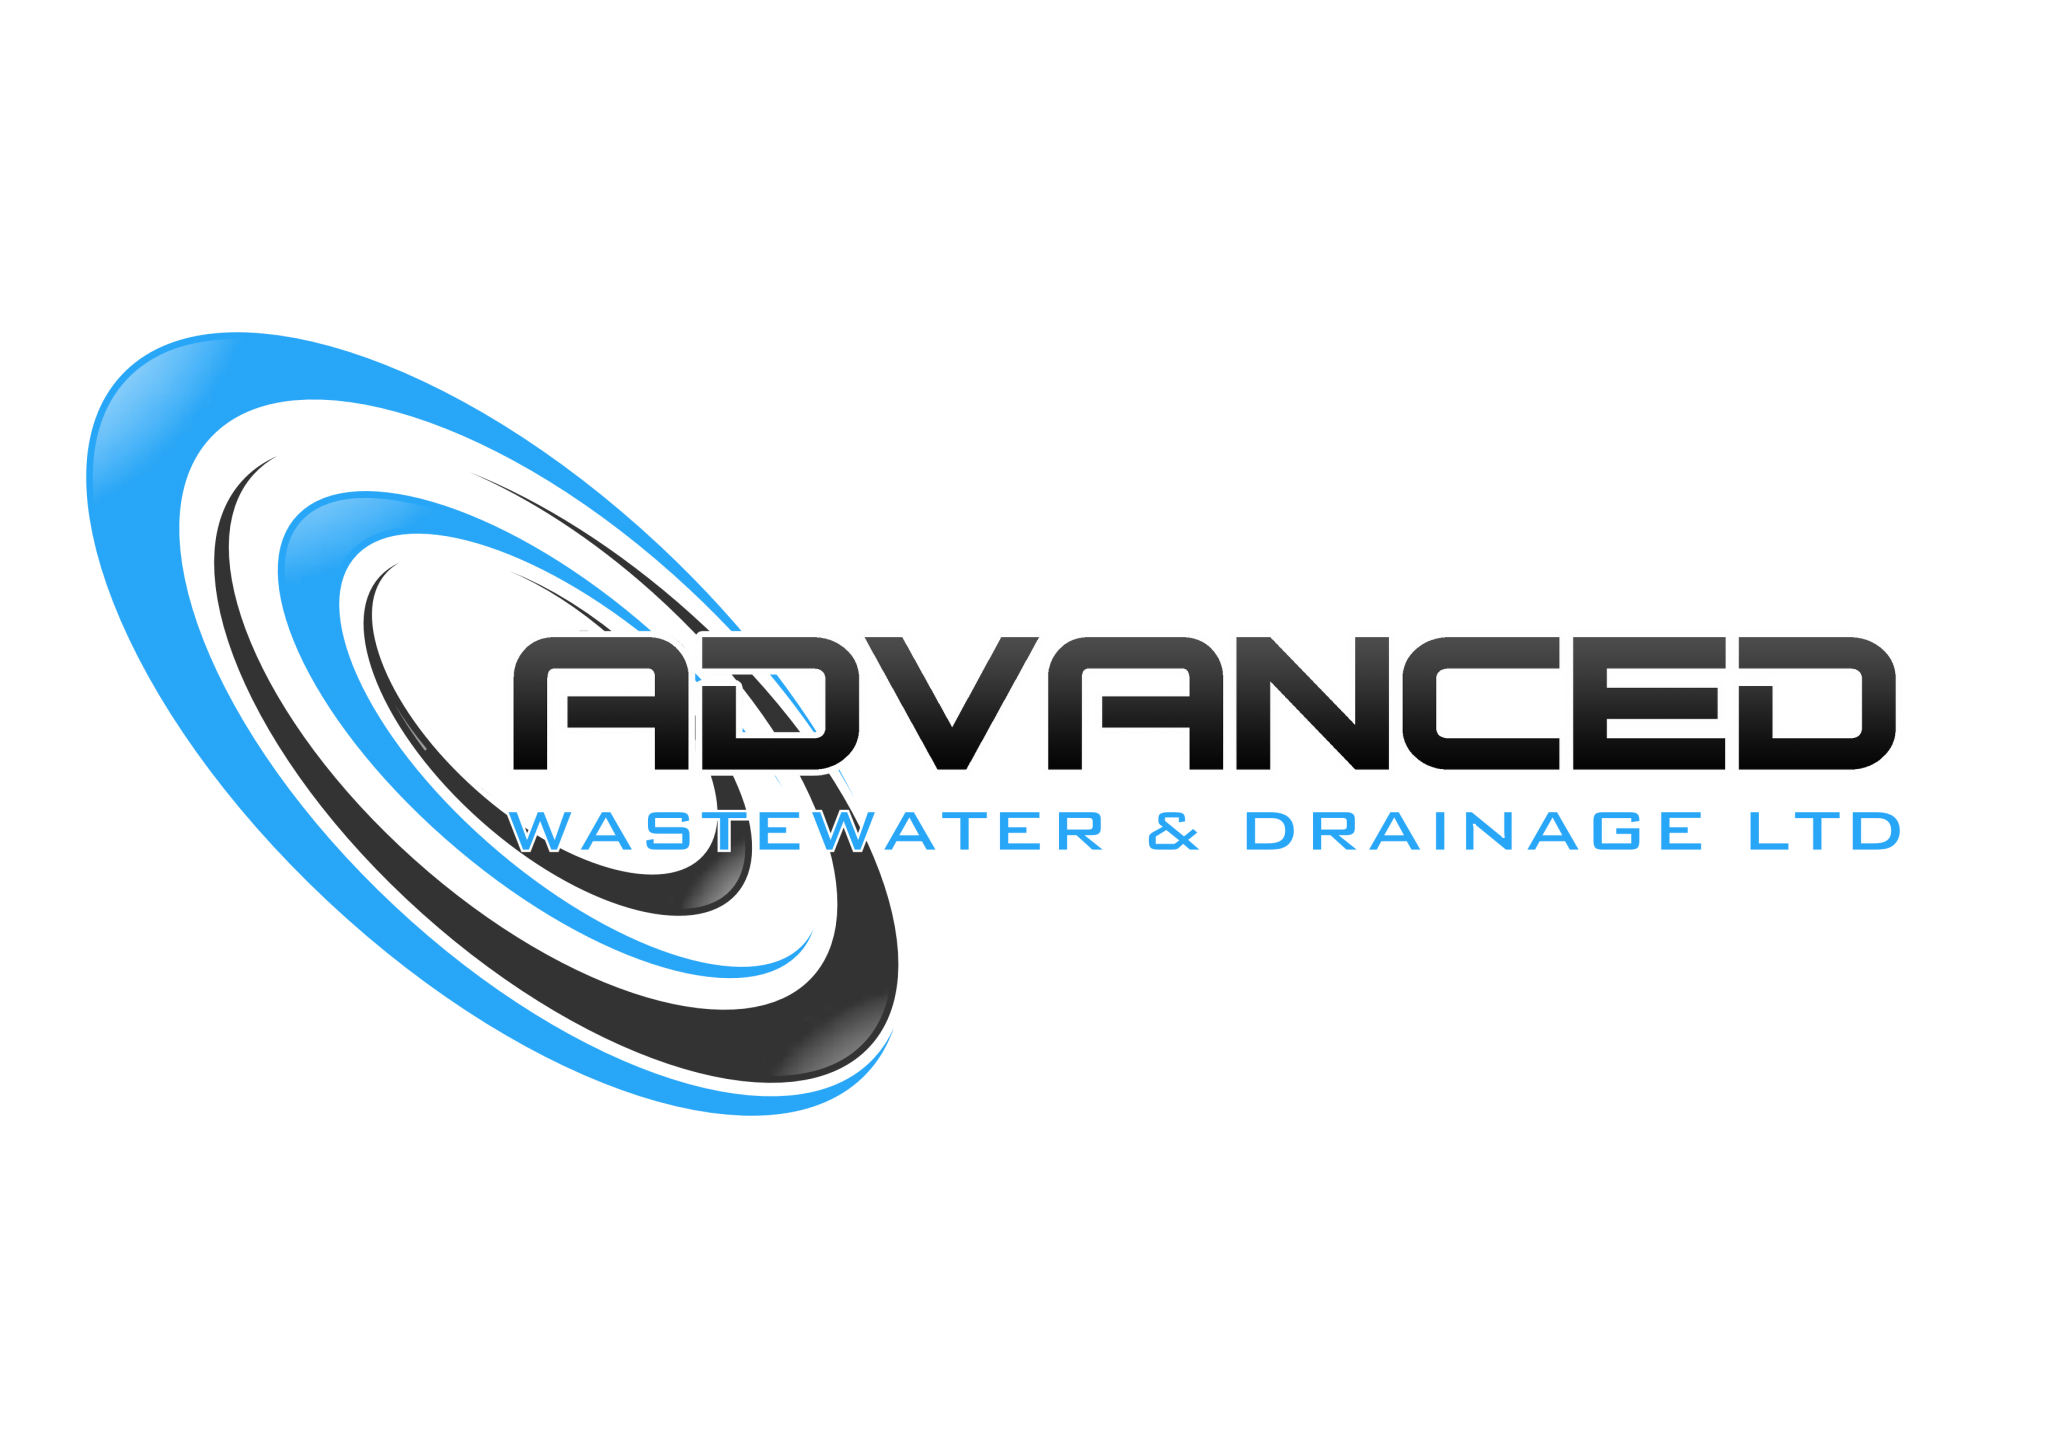 Advanced Wastewater & Drainage Ltd